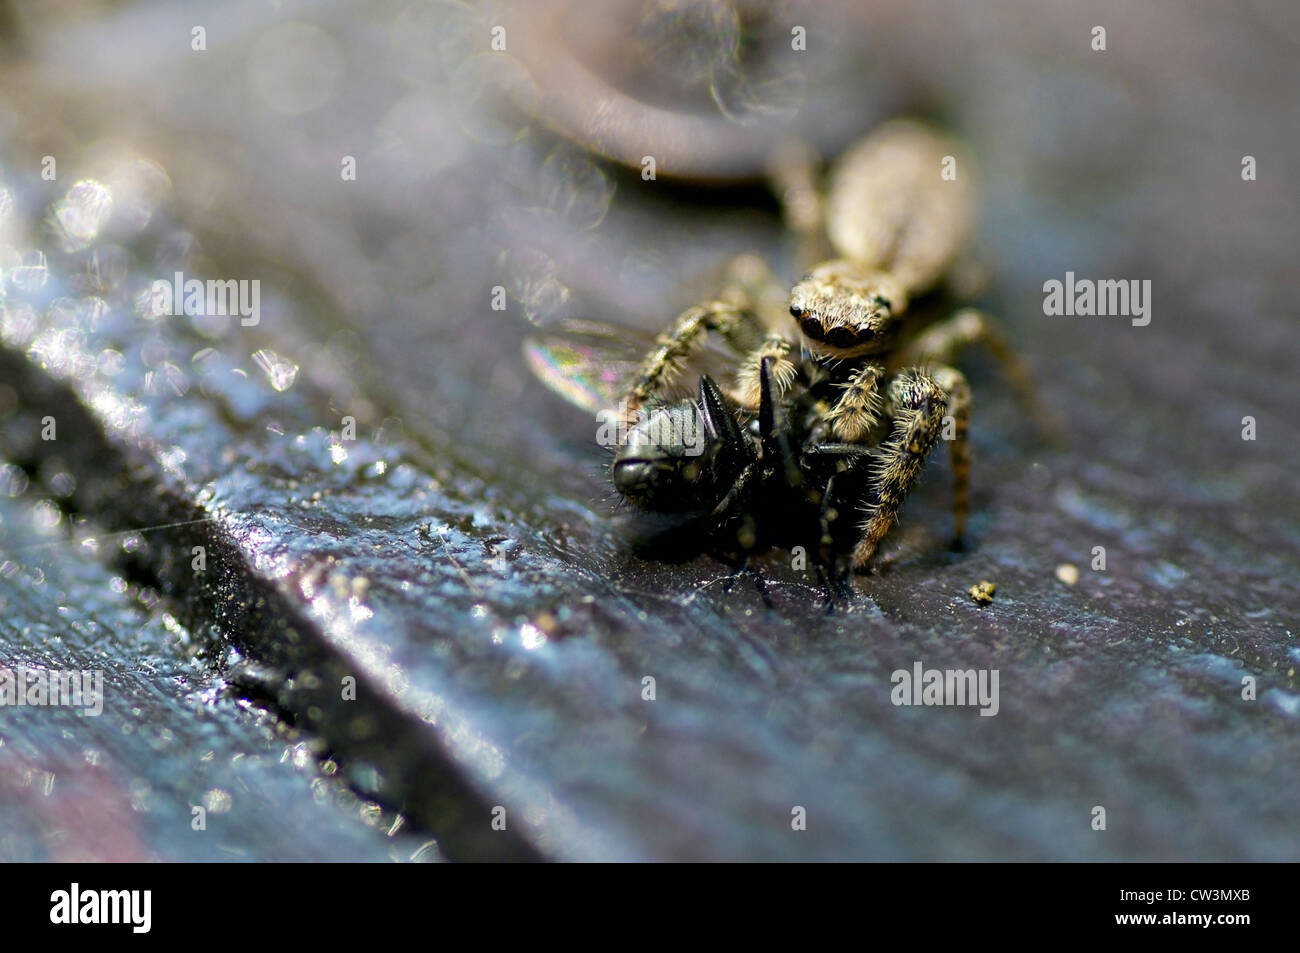 A tiny wolf spider with its prey, a blowfly it has just caught. - Stock Image